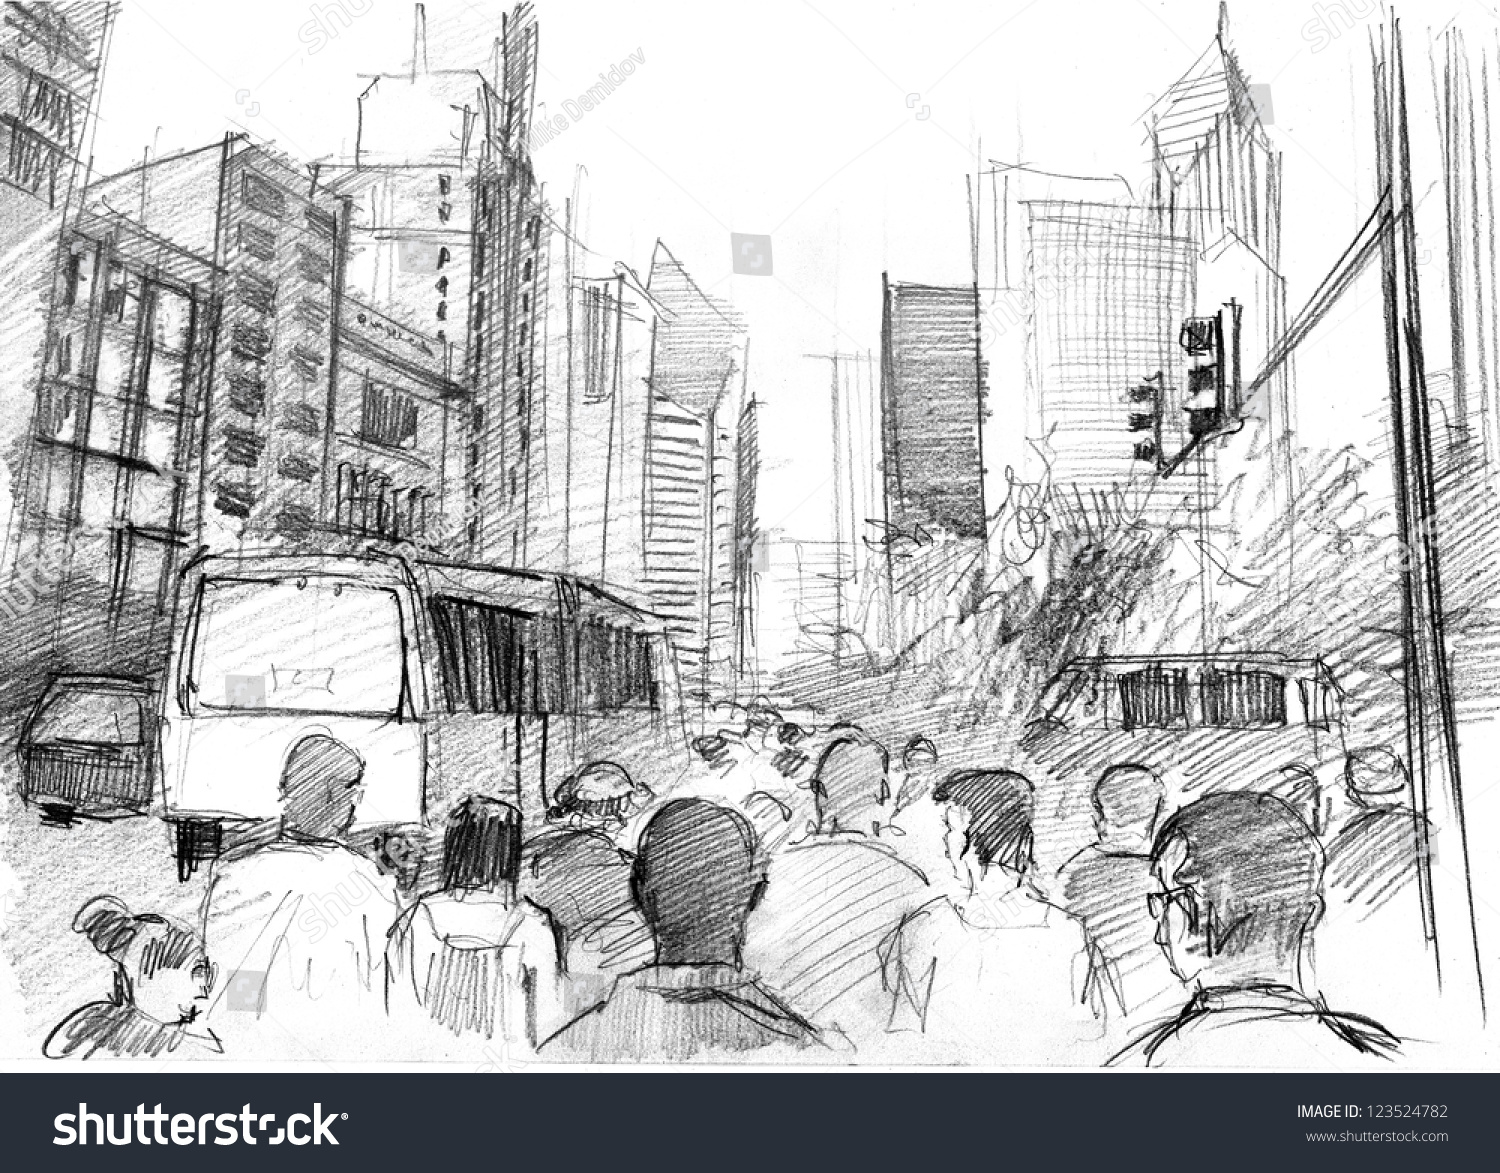 Pencil drawing big modern city skyscrapers stock illustration 123524782